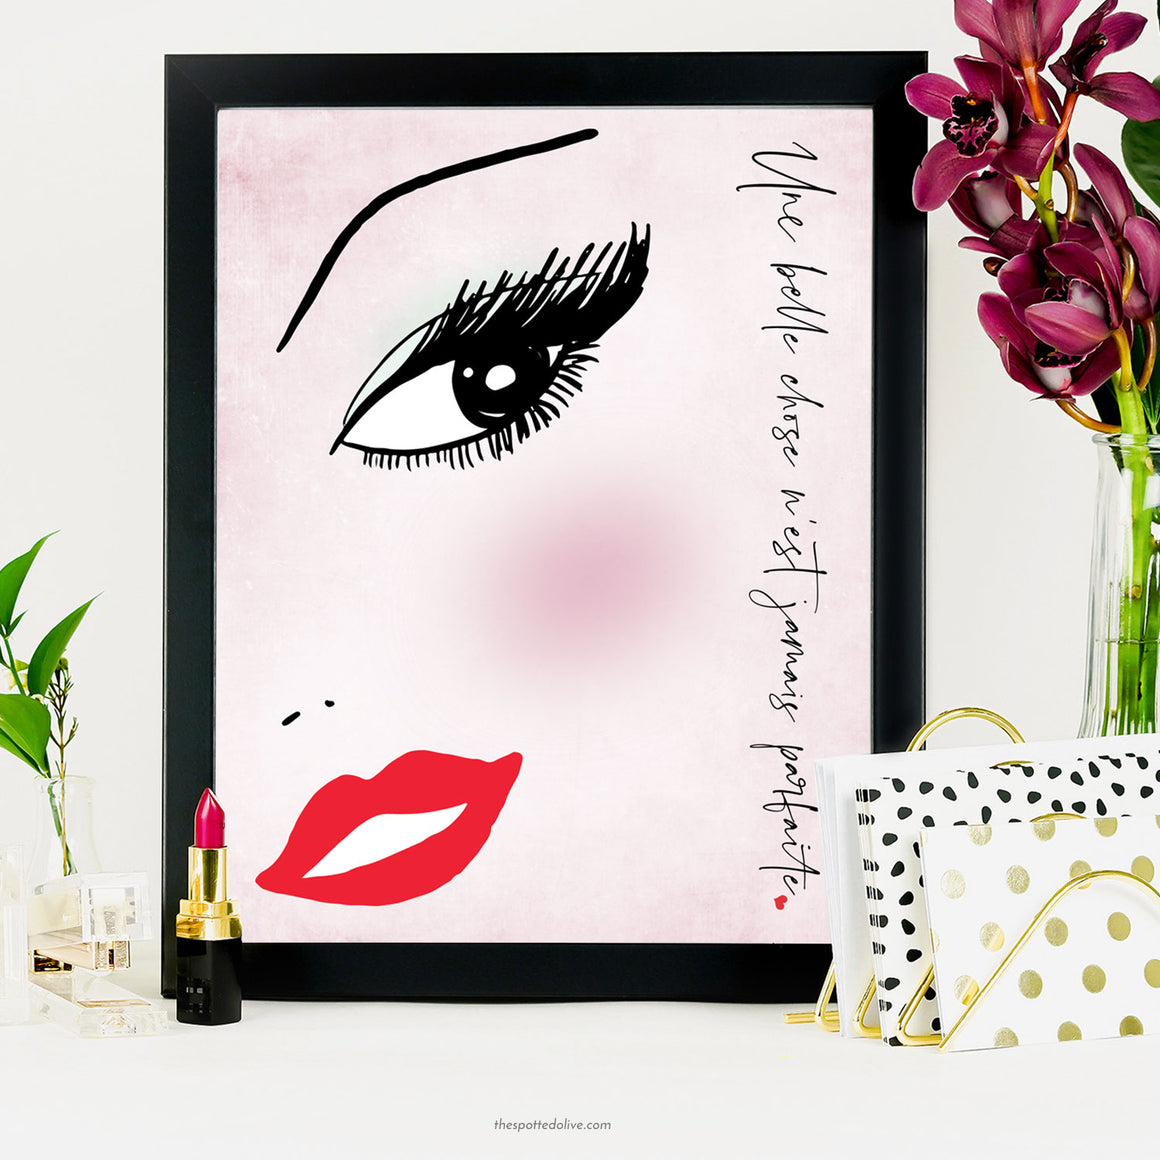 A Beautiful Thing Illustration Printable Art by The Spotted Olive - Scene